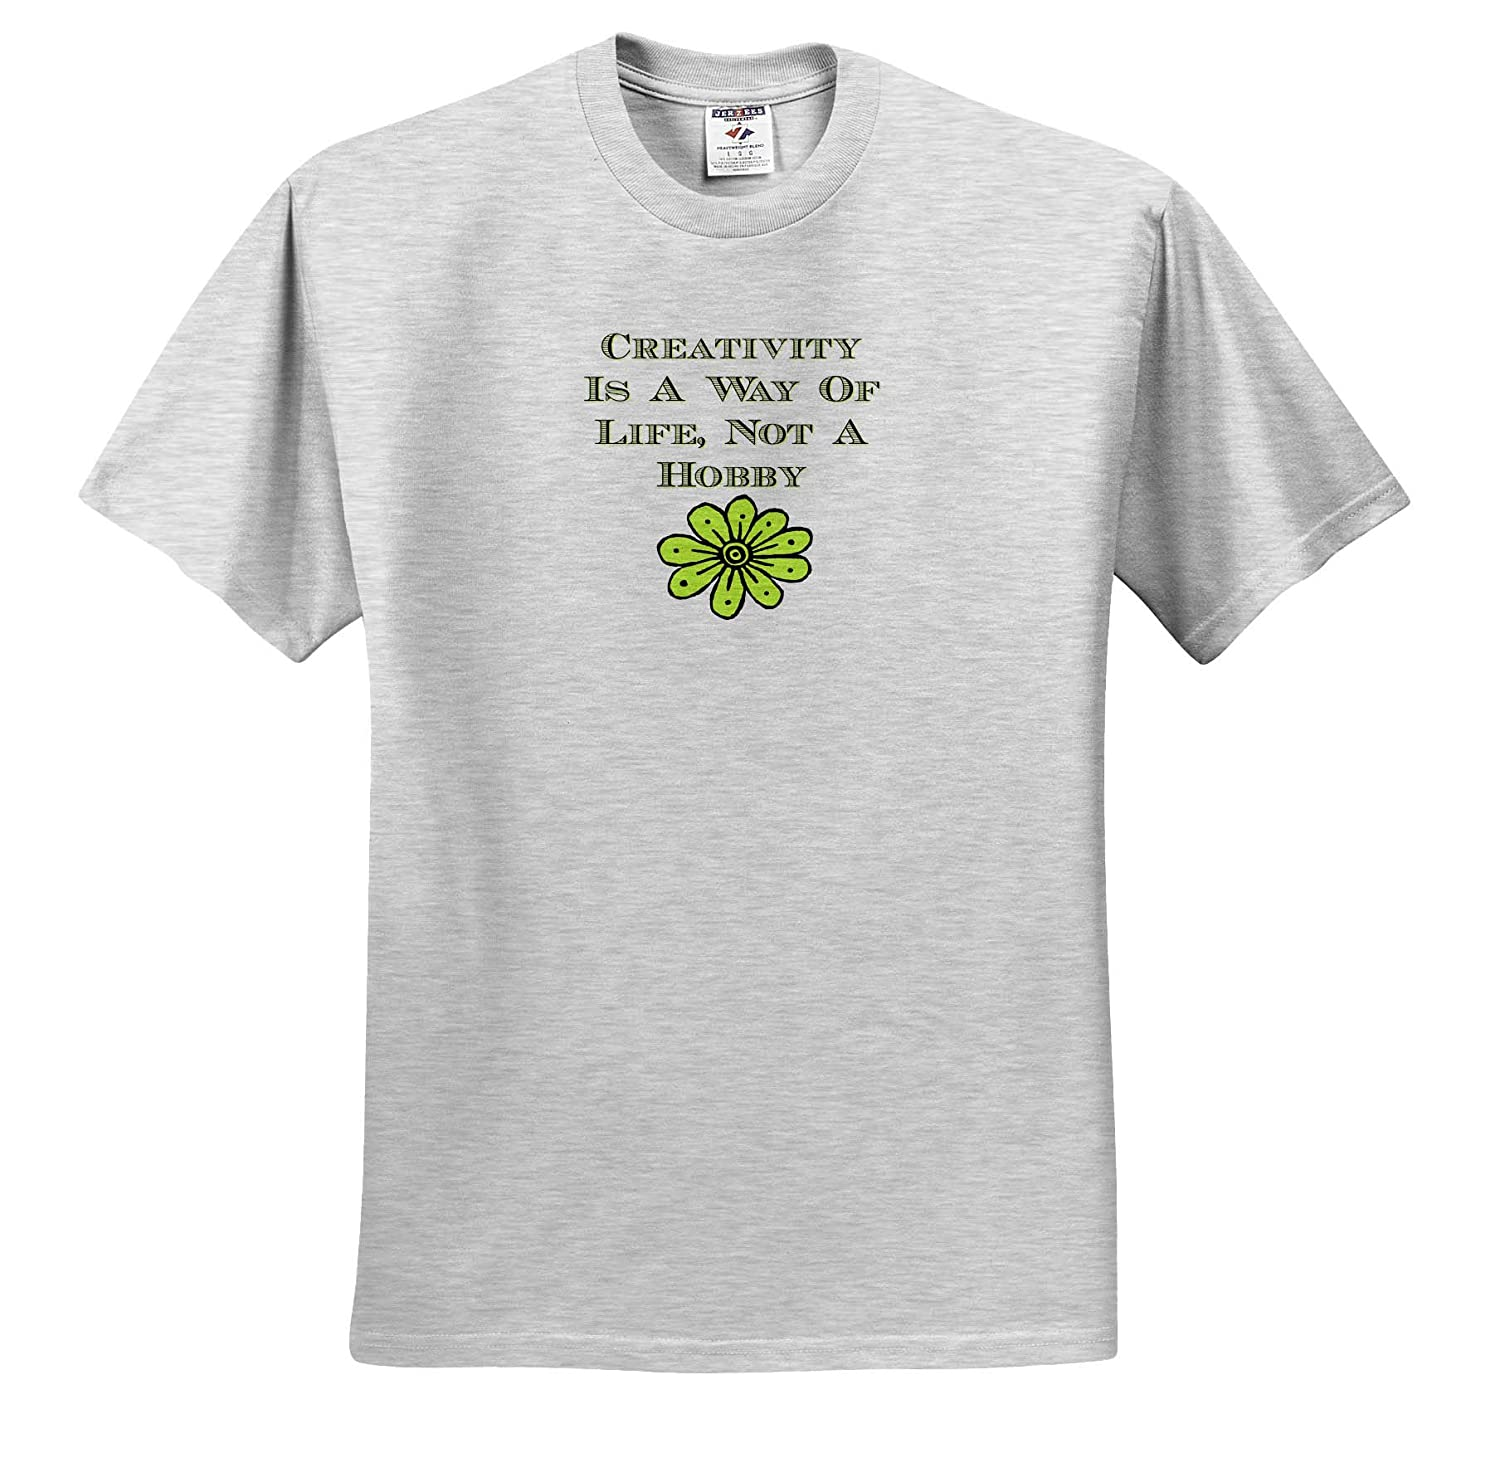 Adult T-Shirt XL 3dRose Carrie Merchant Quote Image of Creativity is A Way of Life Not A Hobby ts/_313392